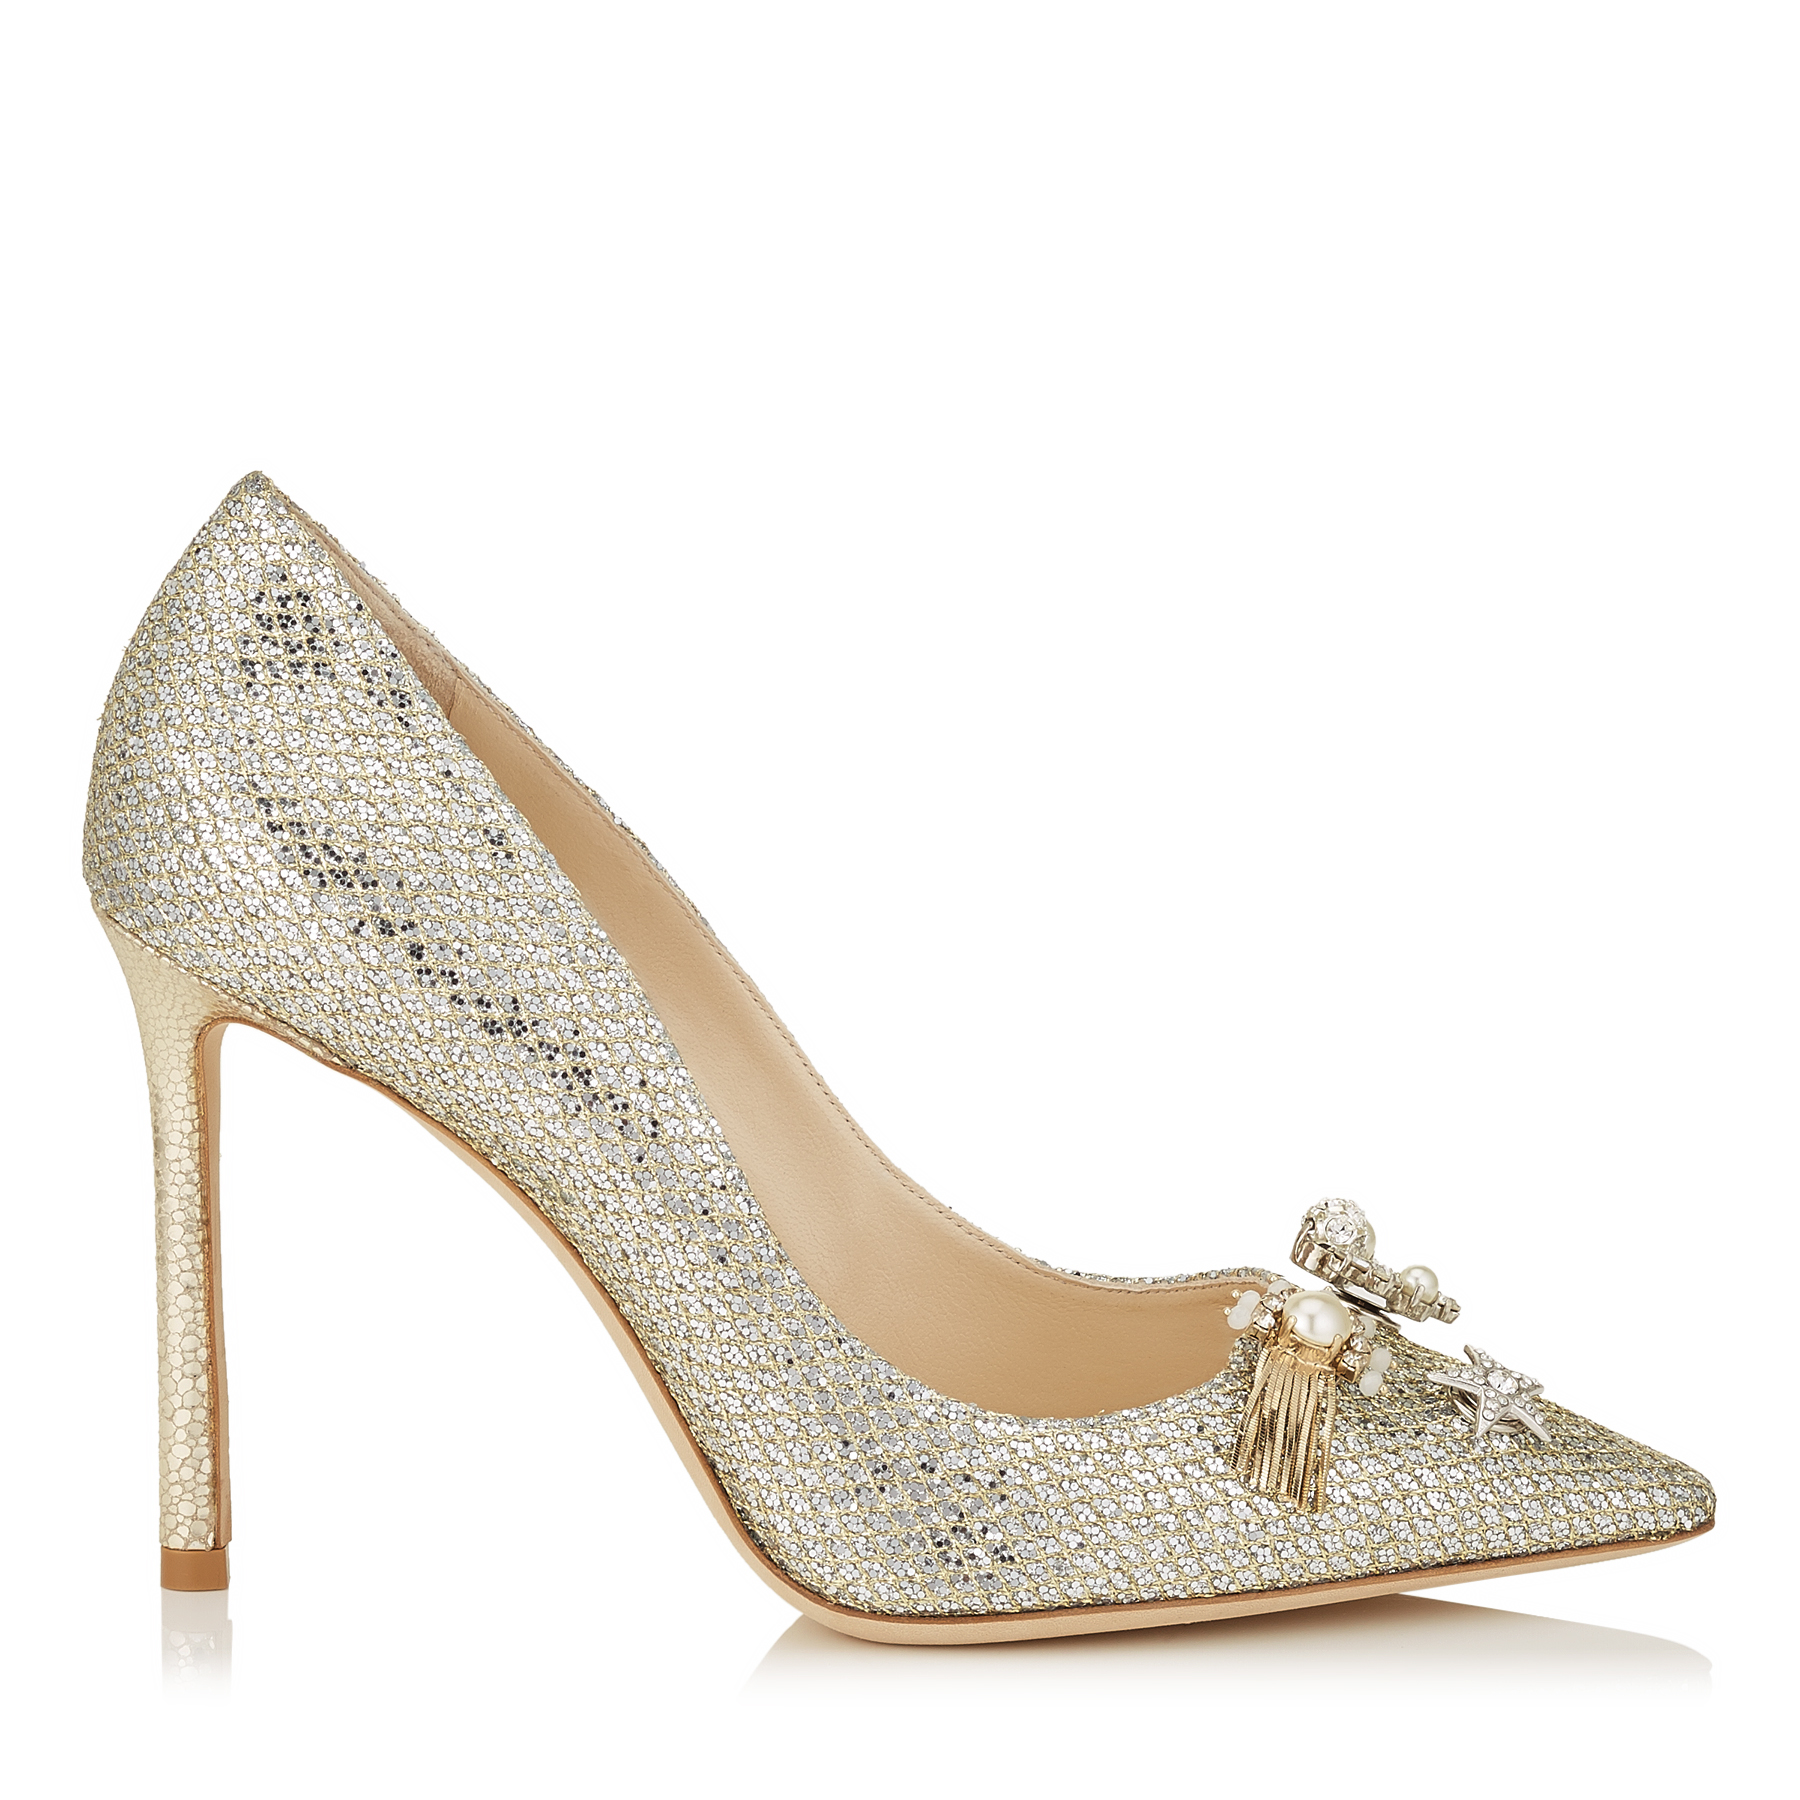 JASMINE 100 Champagne Glitter Fabric Pointy Toe Pumps with Jewelled Buttons